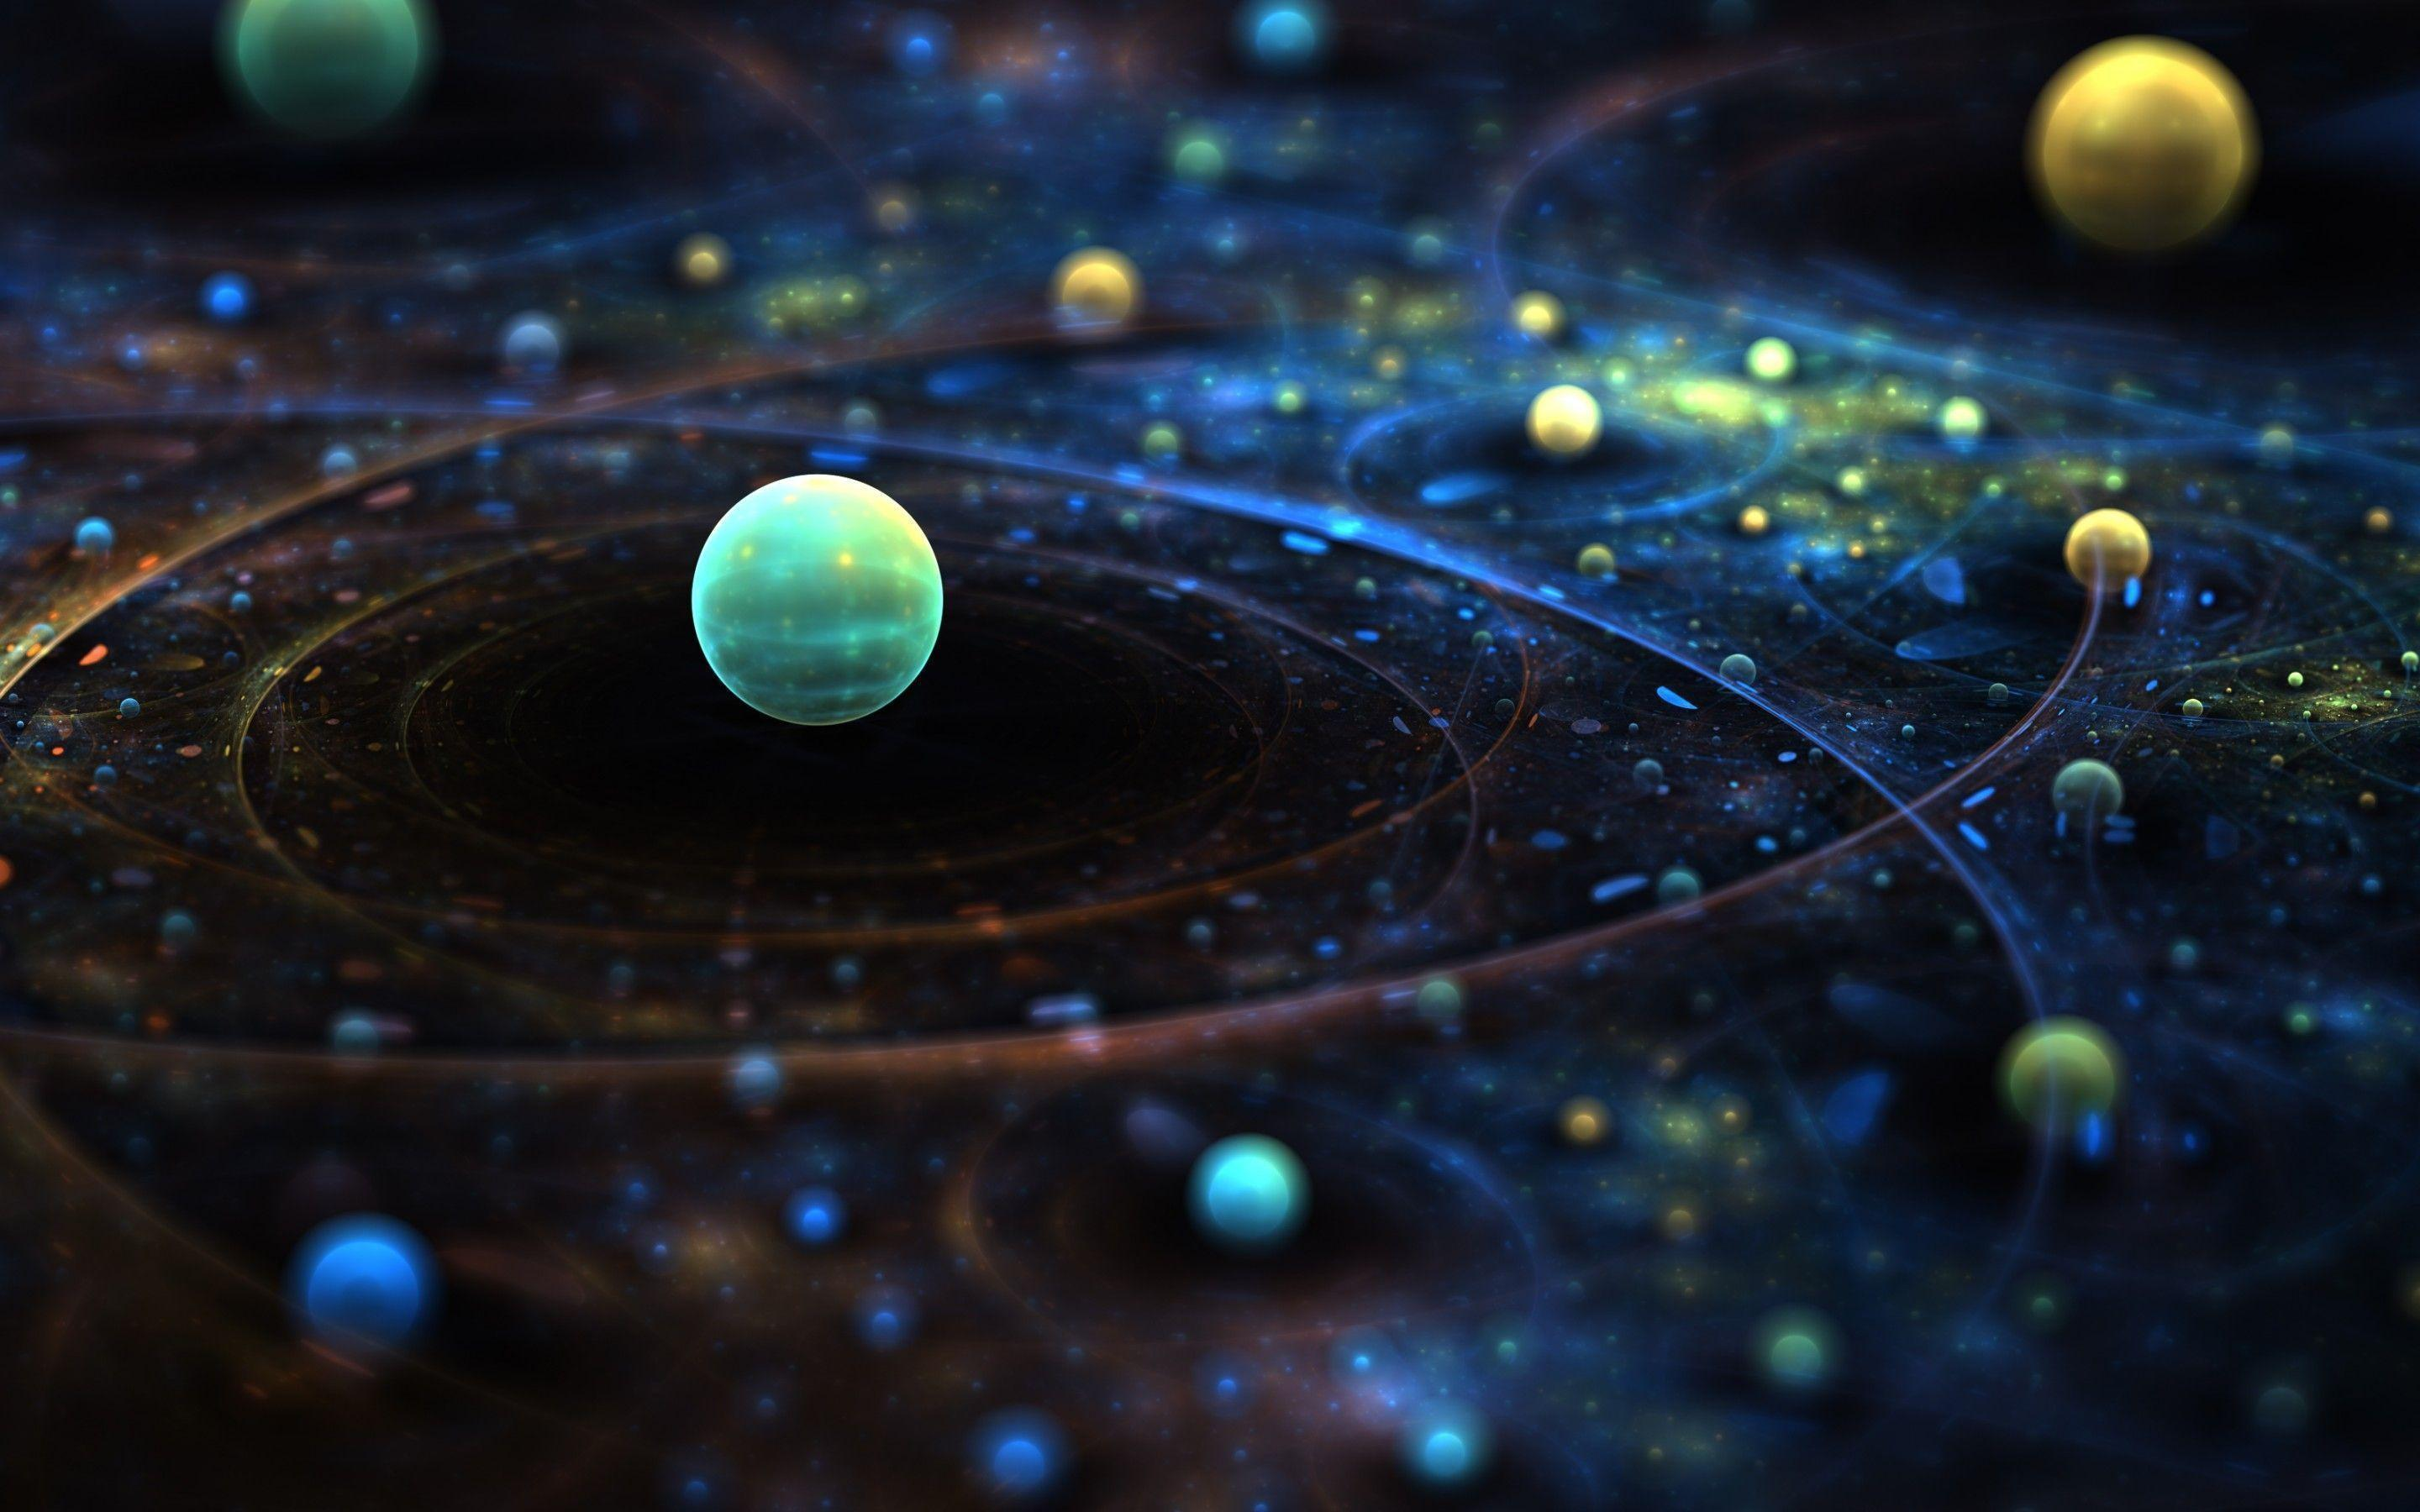 solar system wallpapers for desktop - photo #25